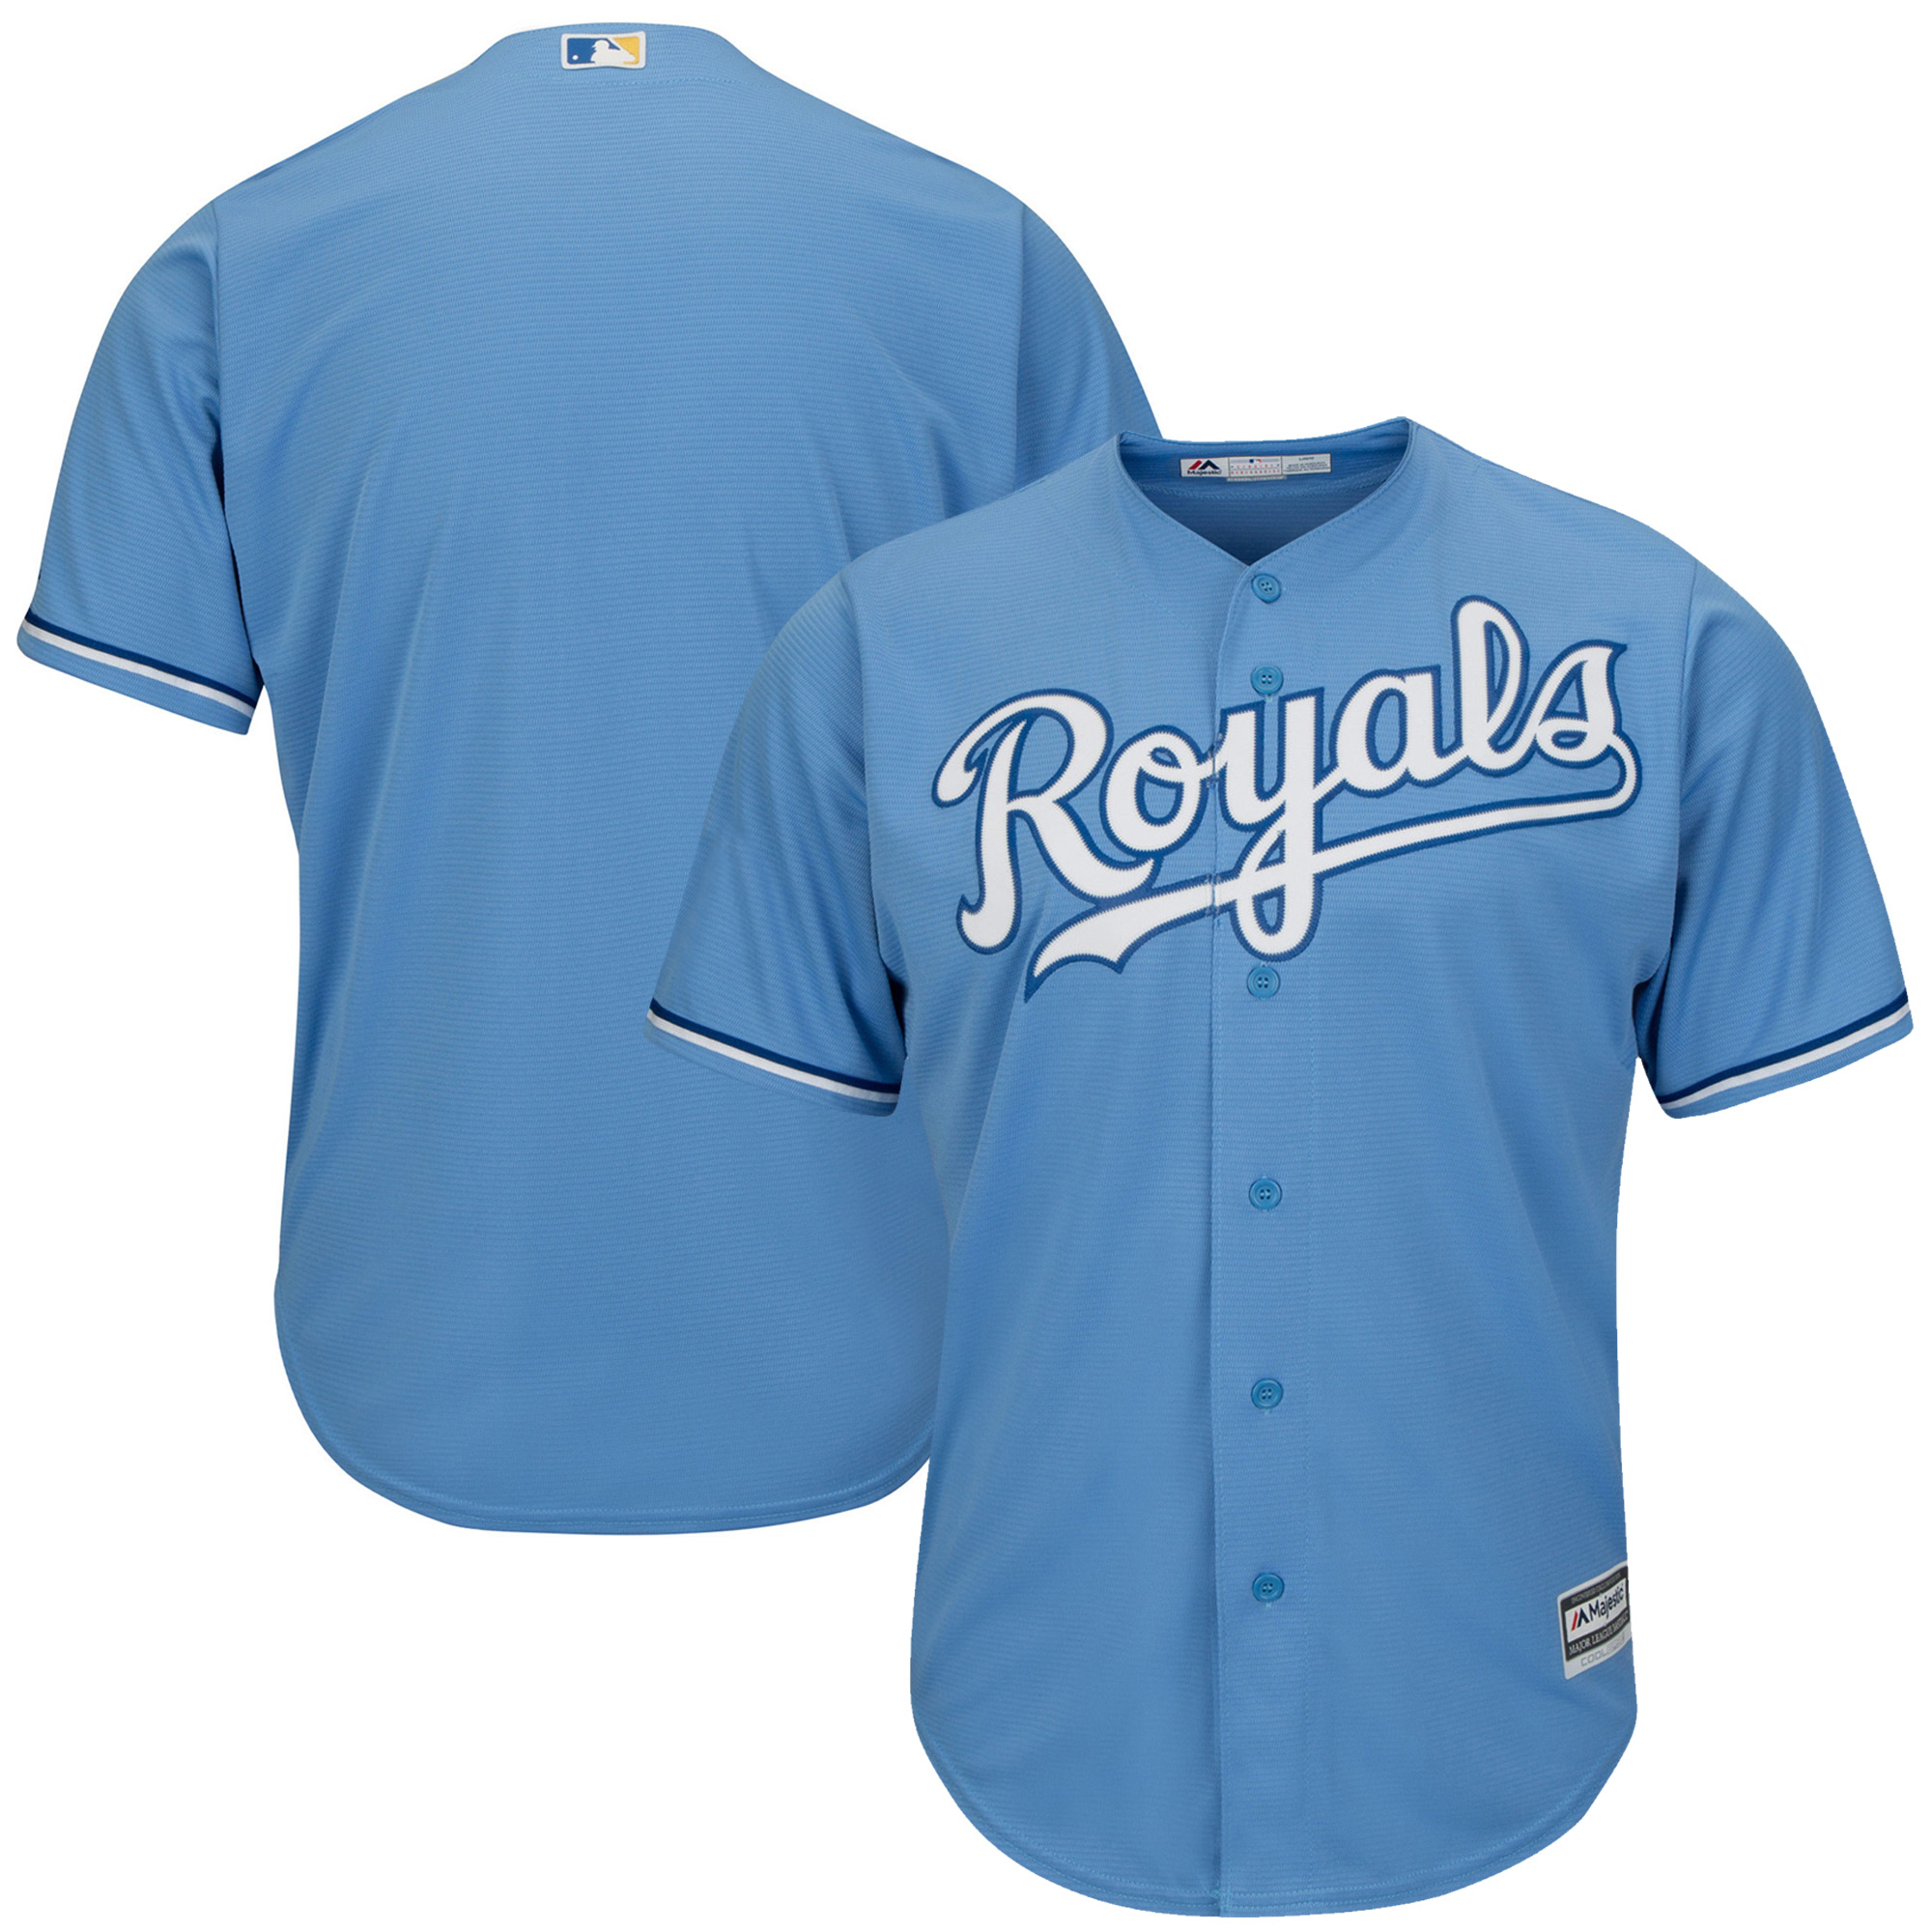 Kansas City Royals Majestic Youth Official Cool Base Jersey - Light Blue